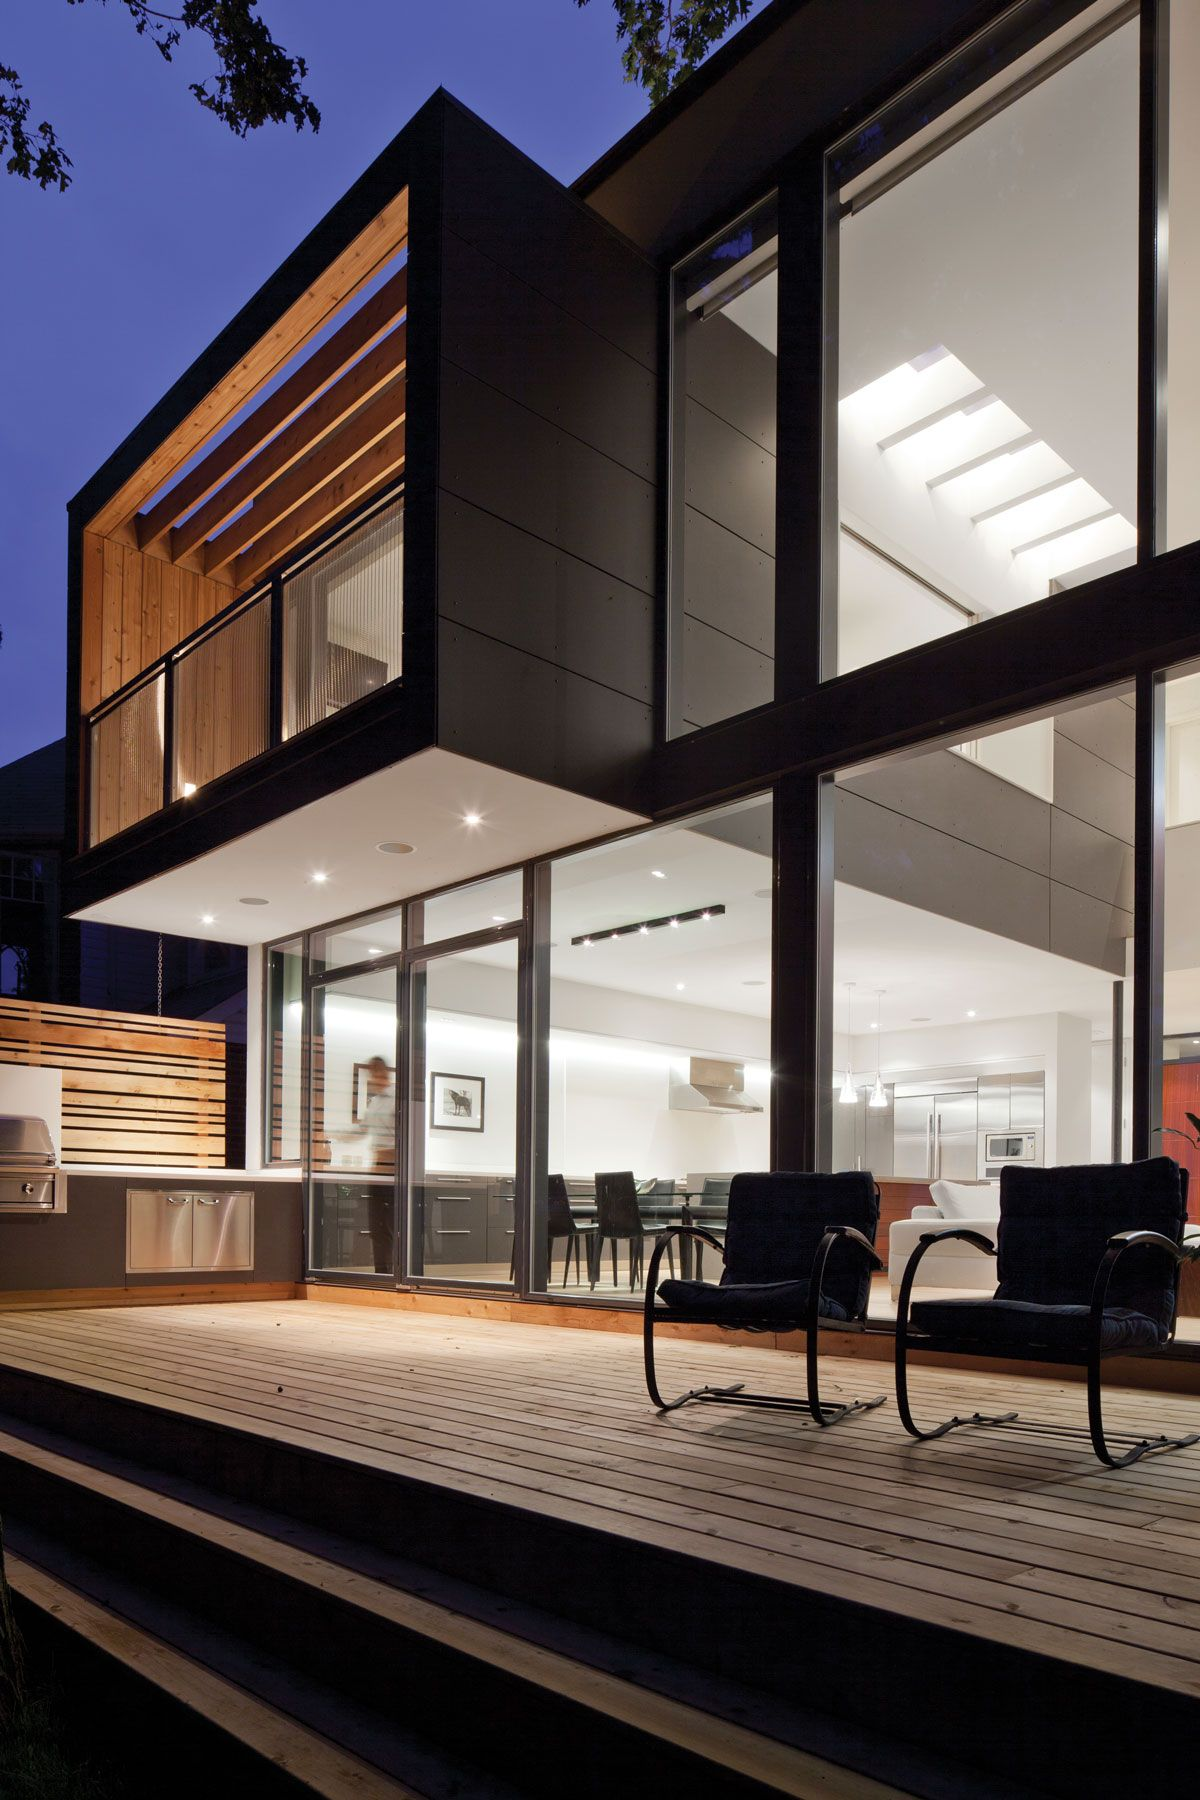 1000+ images about House Designs on Pinterest - ^